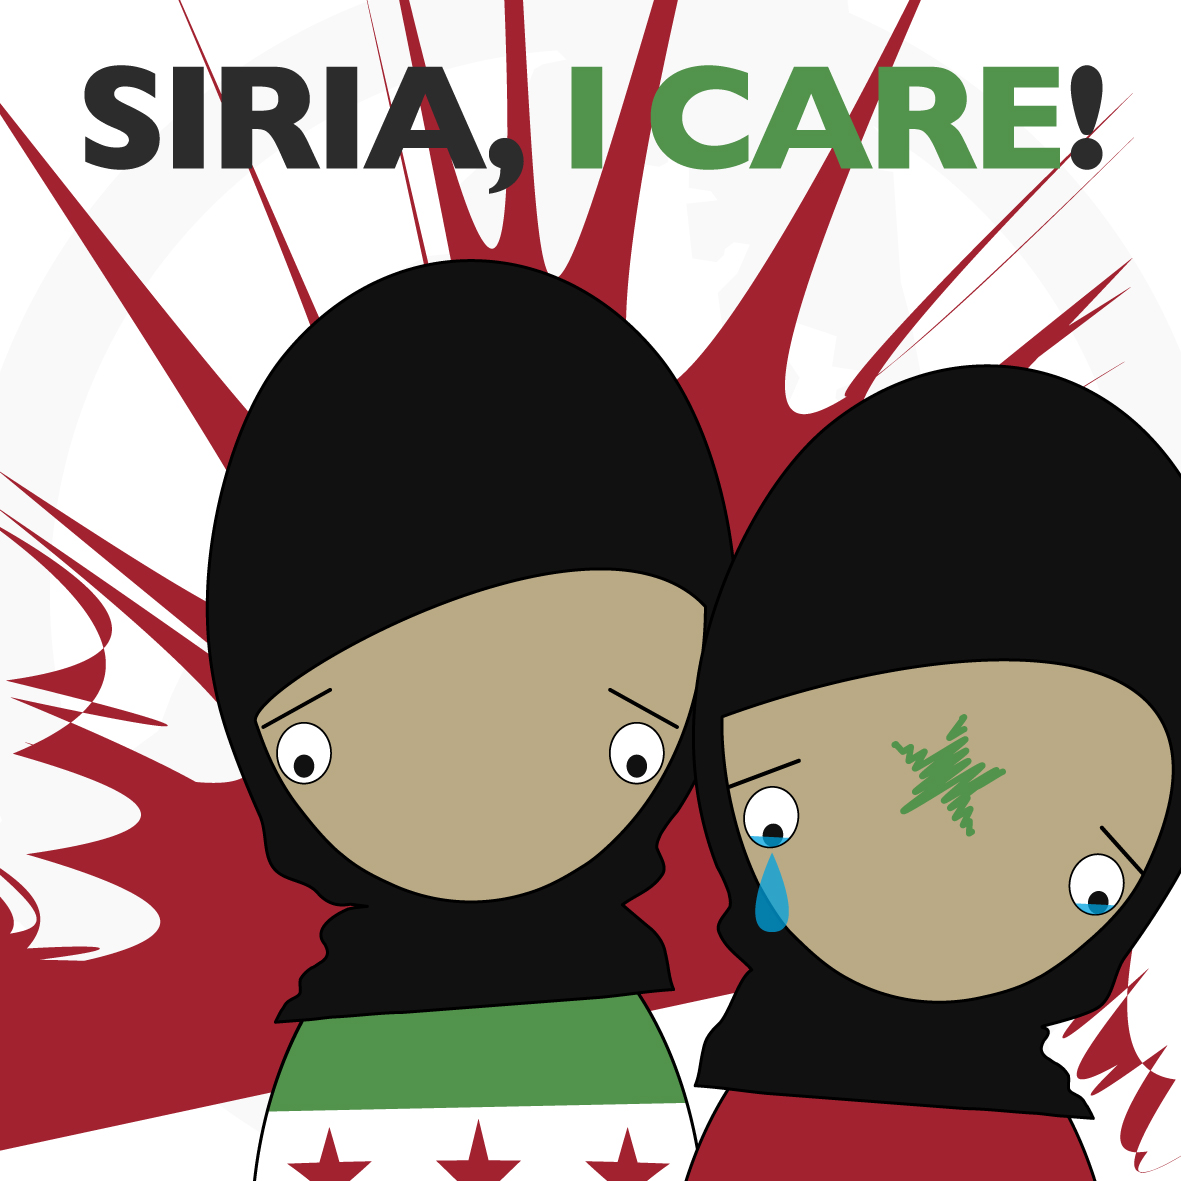 illustrazione Siria, I Care © Anarkikka